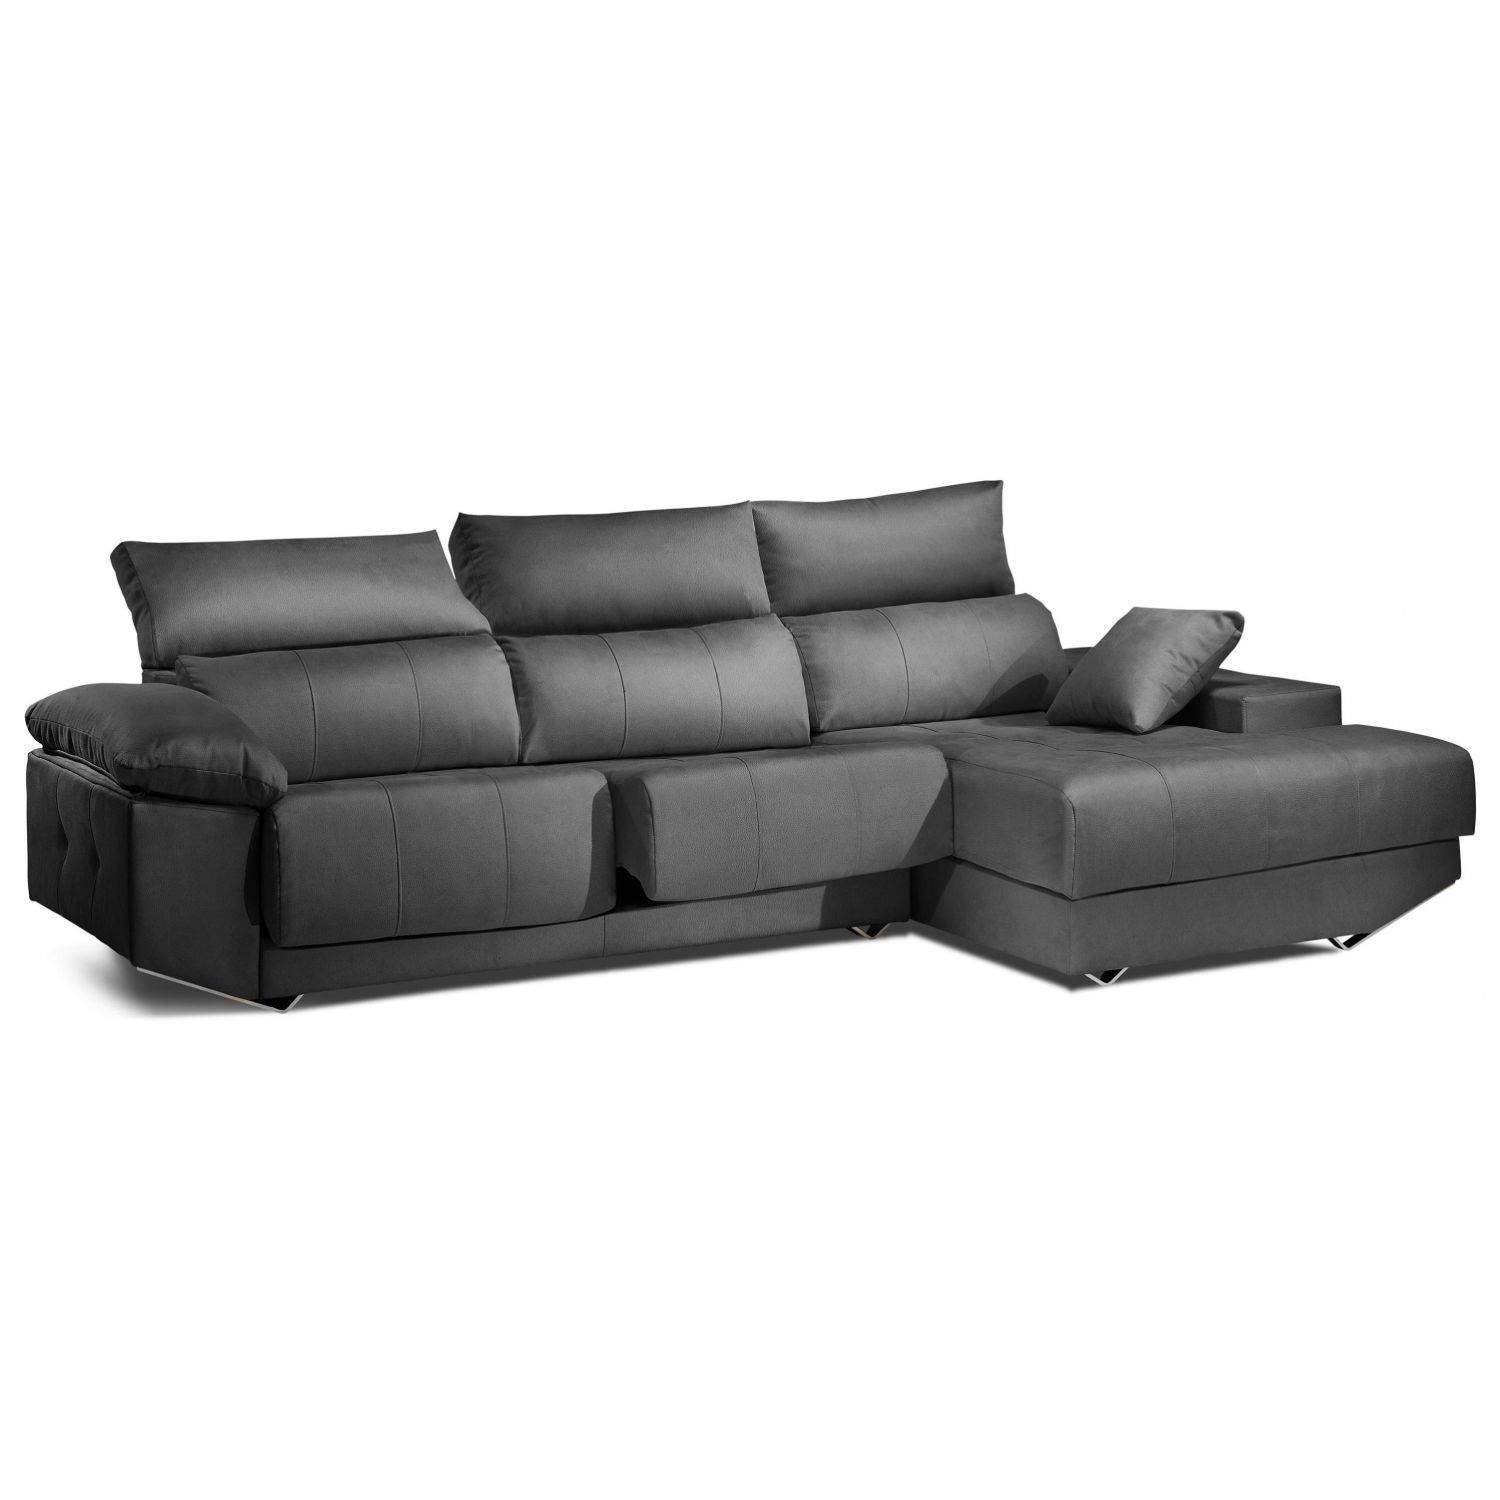 Chaiselongue calidad gris reclinable extensible 260 cm.